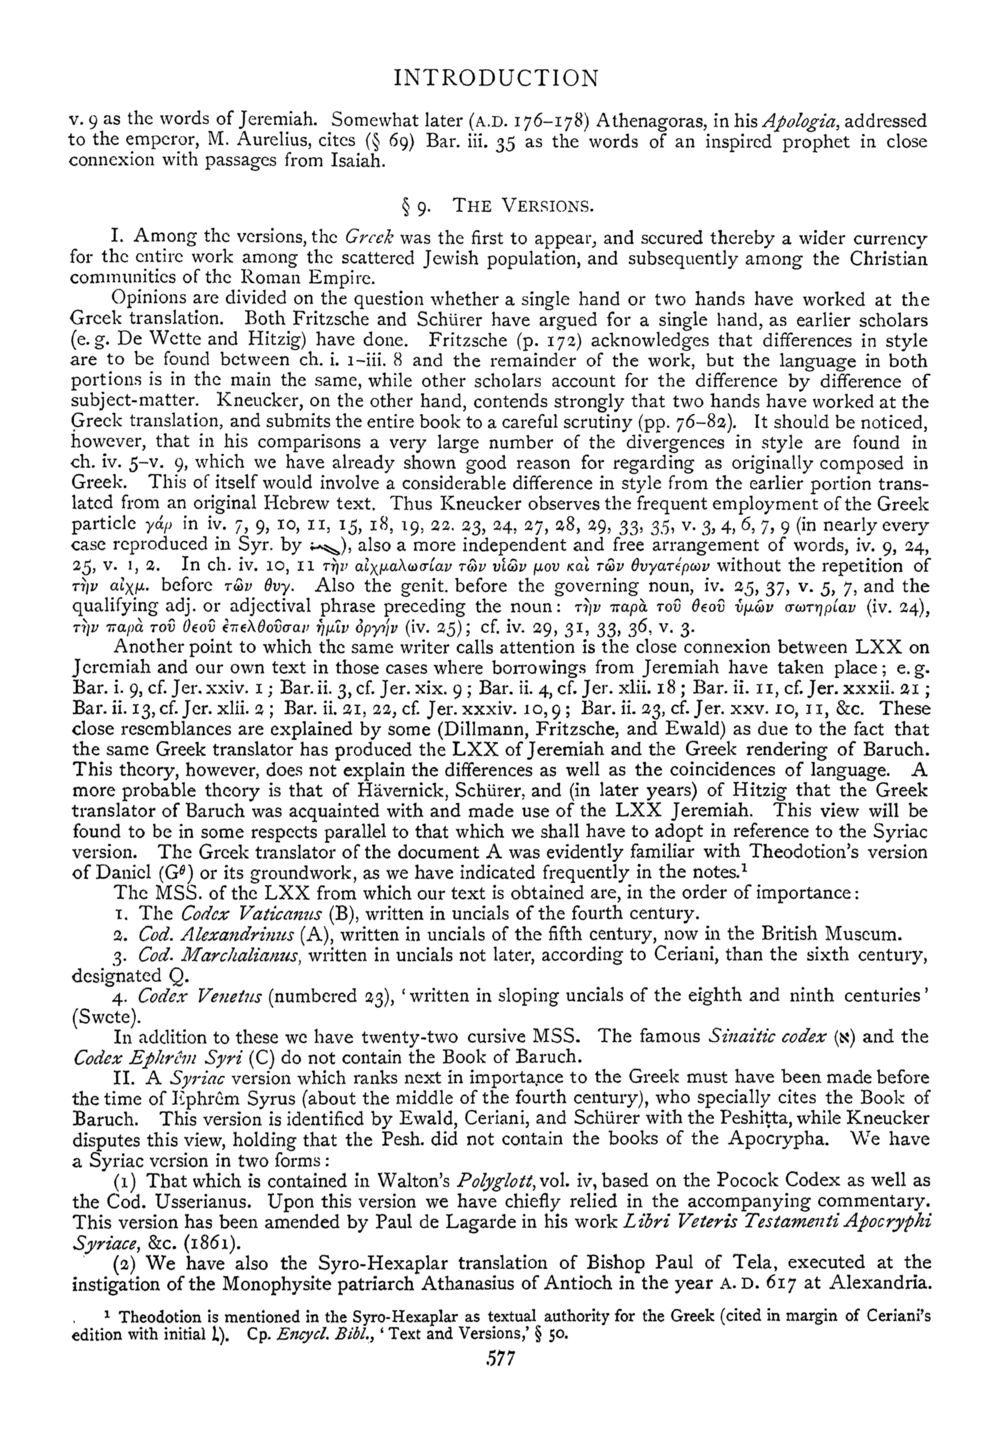 Image of page 577